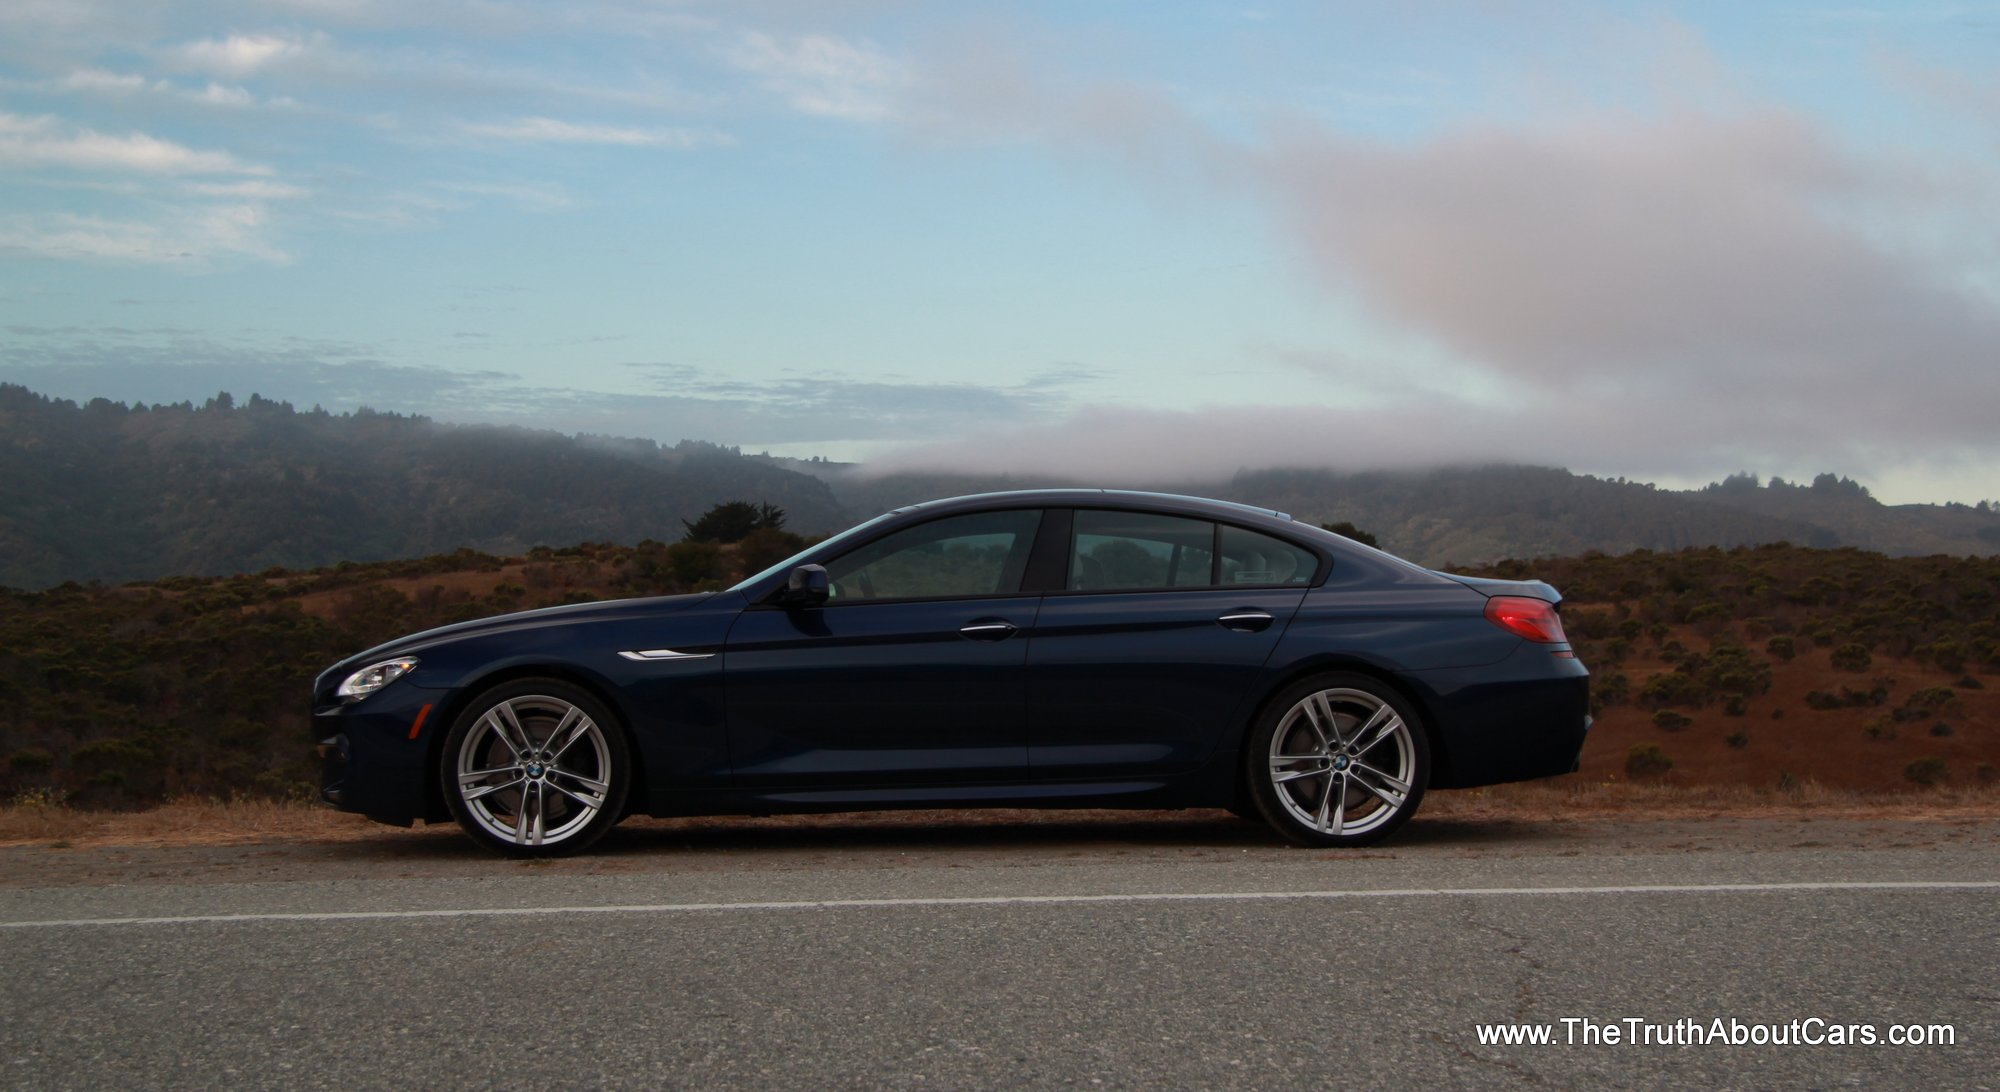 2013 bmw 640i gran coupe exterior rear 3 4 picture courtesy of alex l dykes the truth. Black Bedroom Furniture Sets. Home Design Ideas